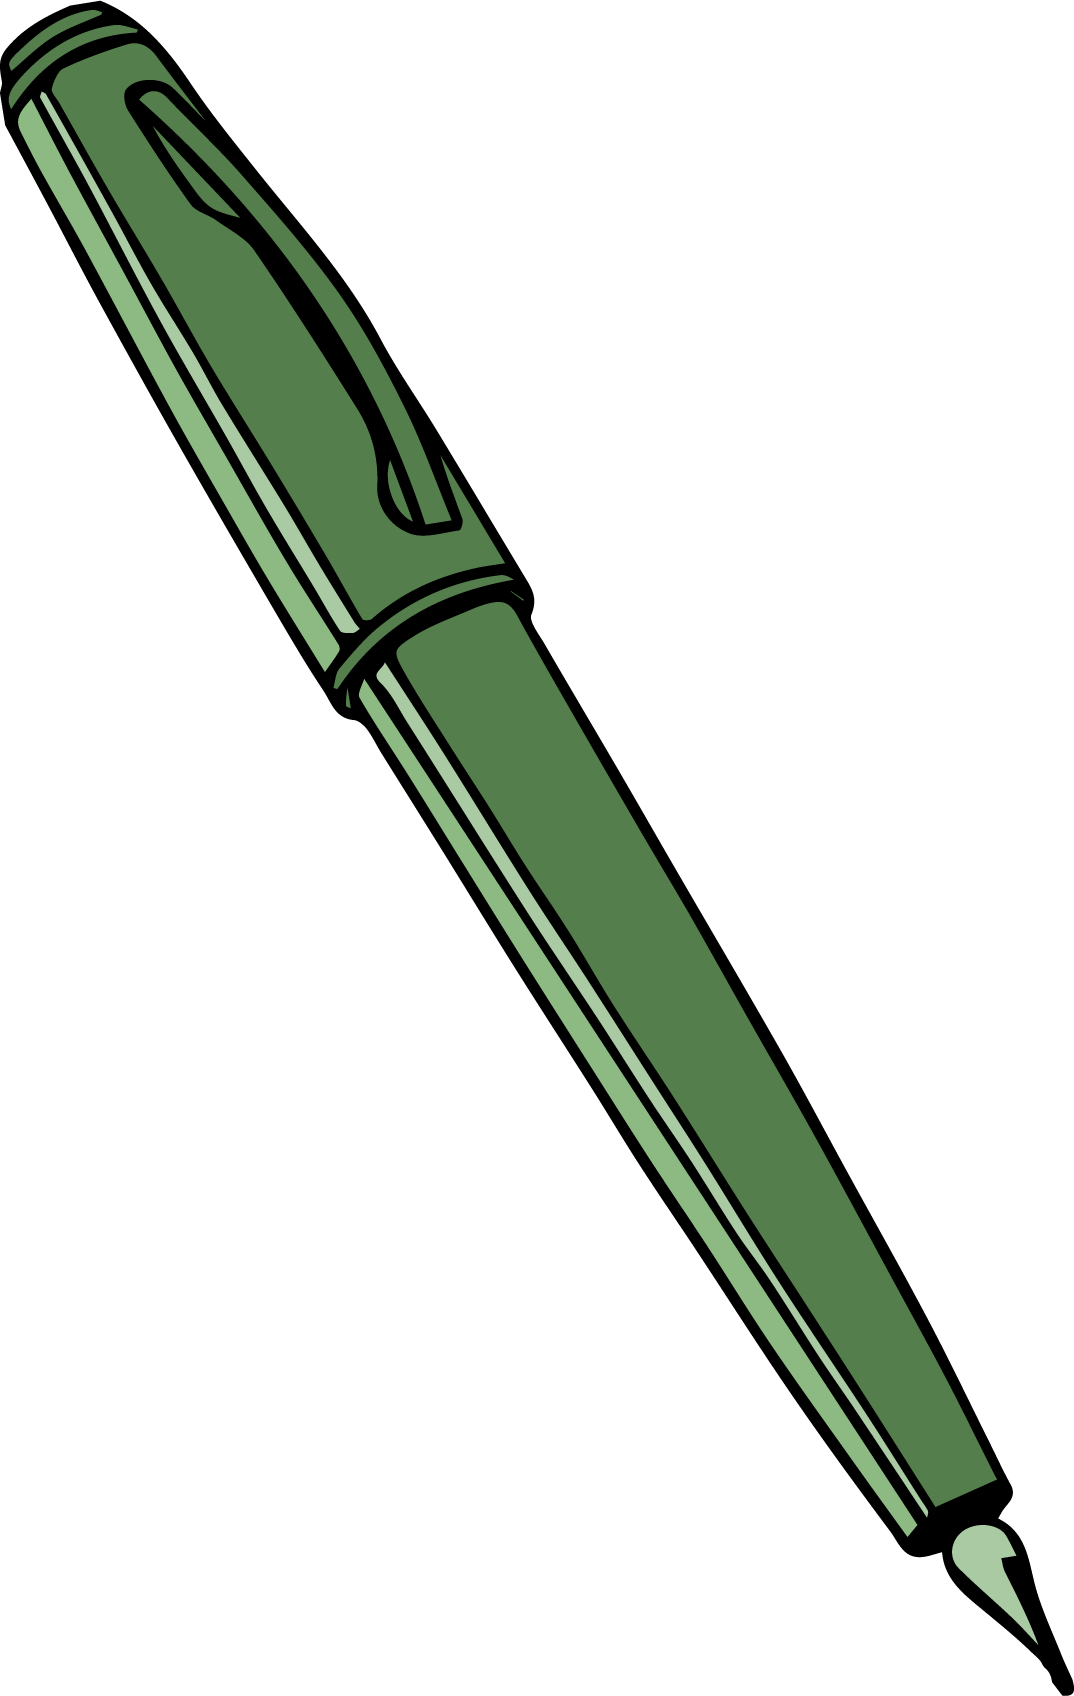 Pencil clipart png. Calligraphy pen clipartly comclipartly